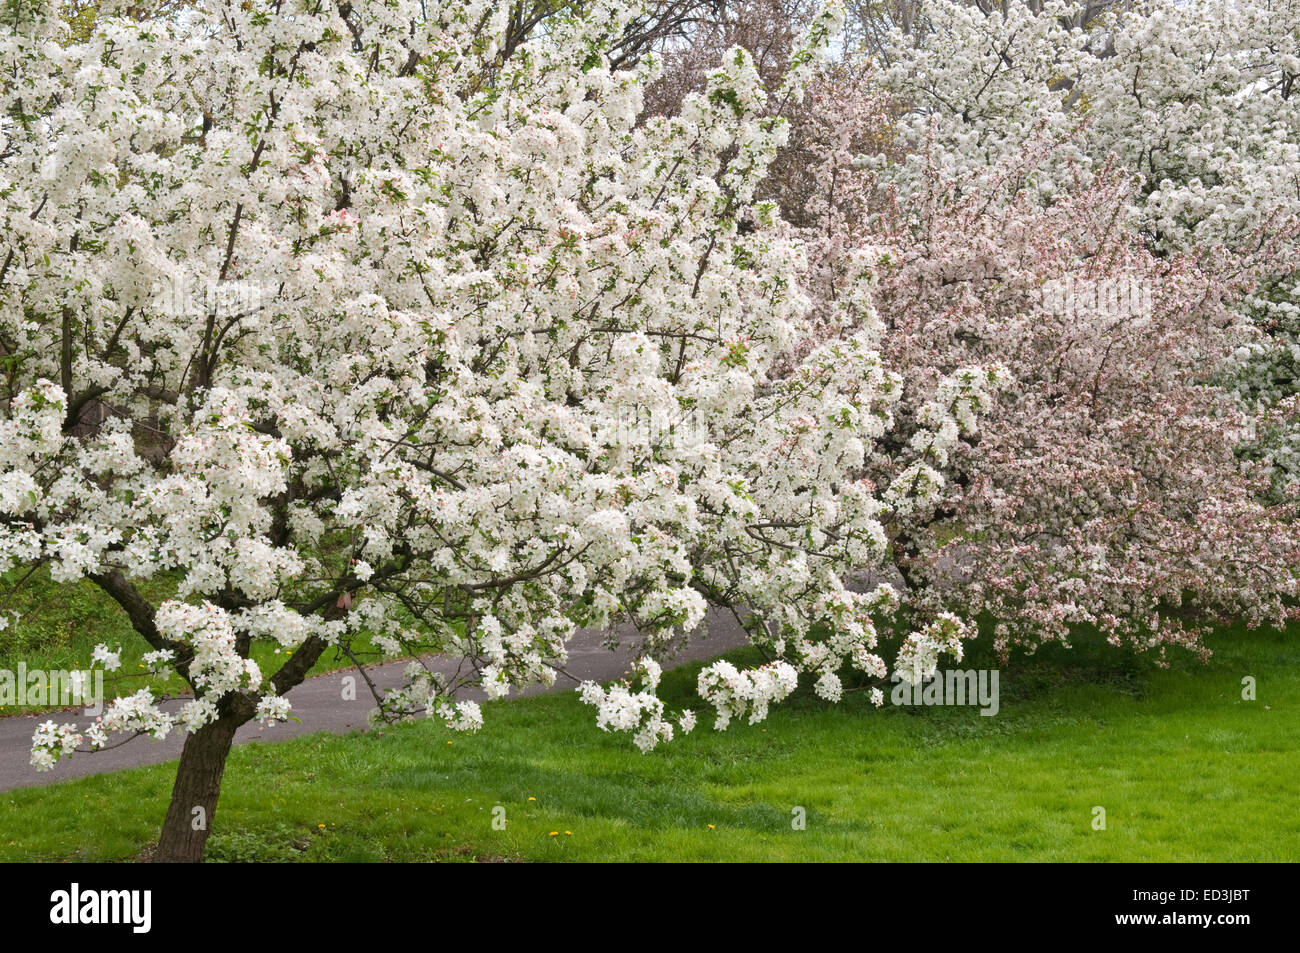 Blooming crab apple trees stock photos blooming crab apple trees flowering crabapple trees malus white angel stock image mightylinksfo